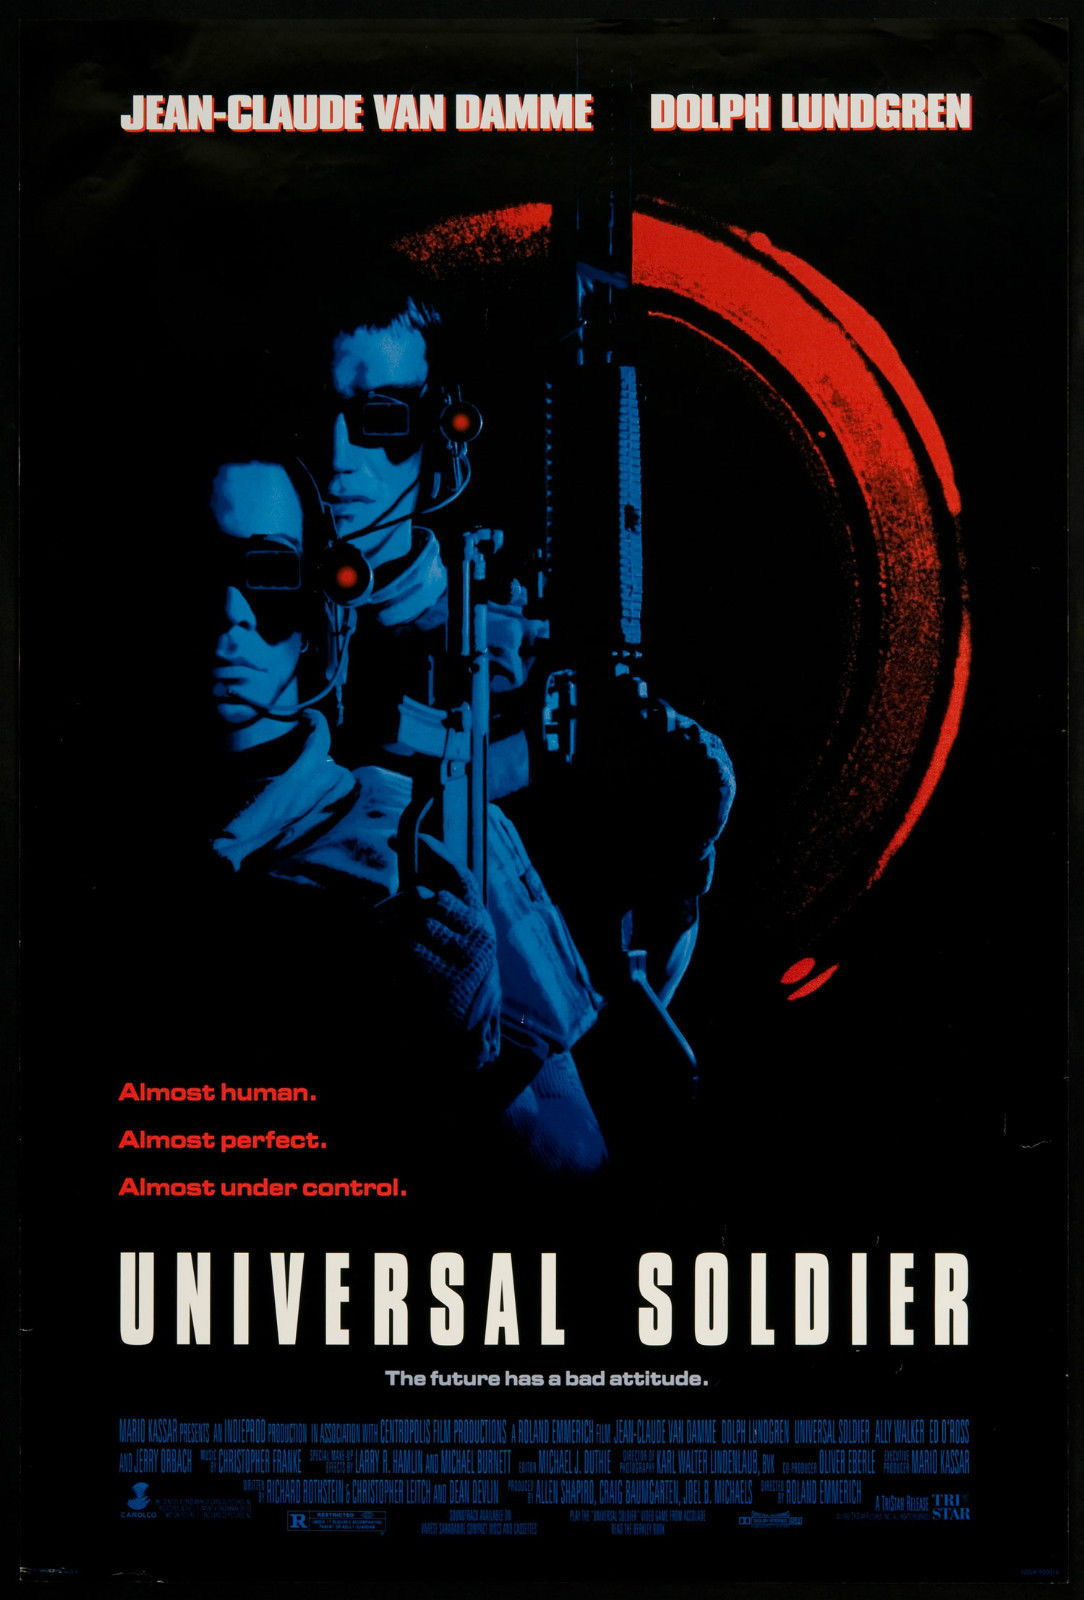 73052-UNIVERSAL-SOLDIER-Movie-Sci-Fi-Rare-FRAMED-CANVAS-PRINT-Toile